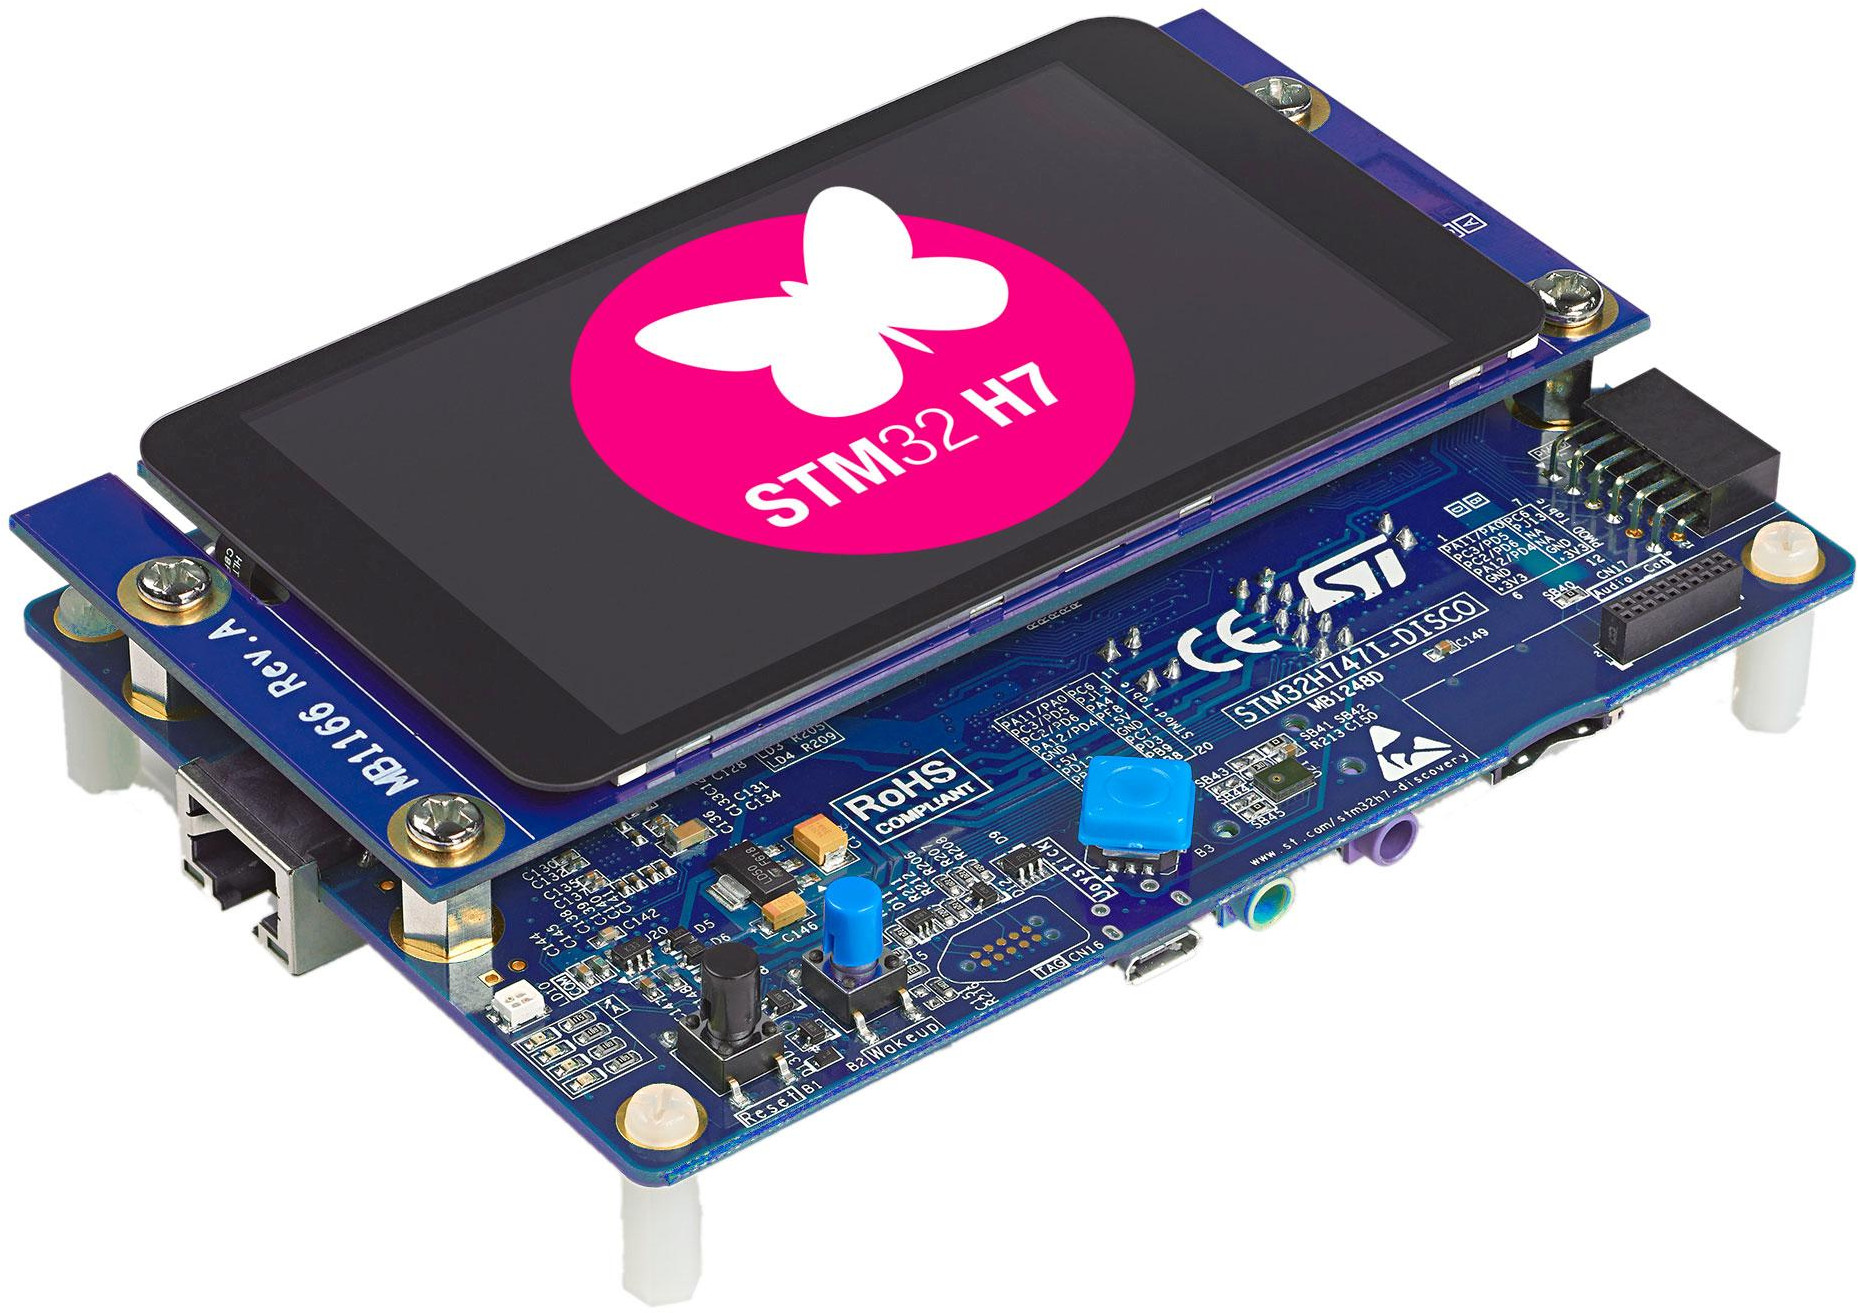 STMicro adds Dual-core Cortex-M7/M4 Microcontrollers to STM32H7 Family